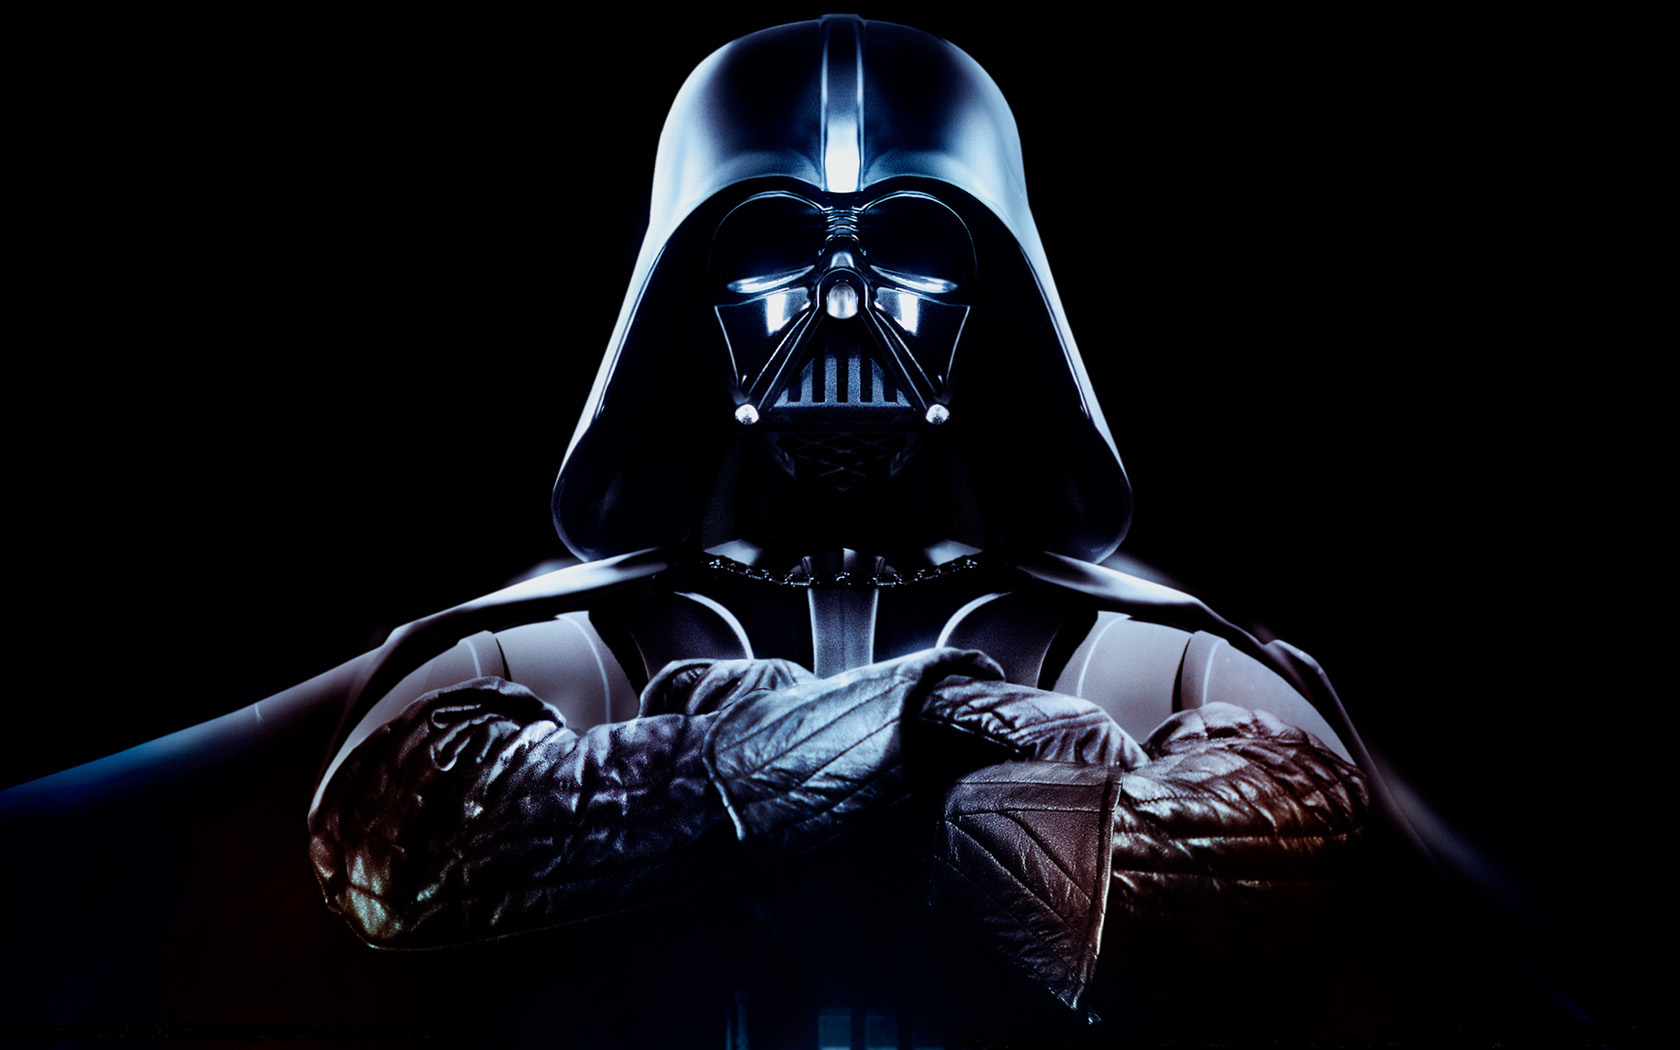 Star Wars Darth Vader Wallpaper